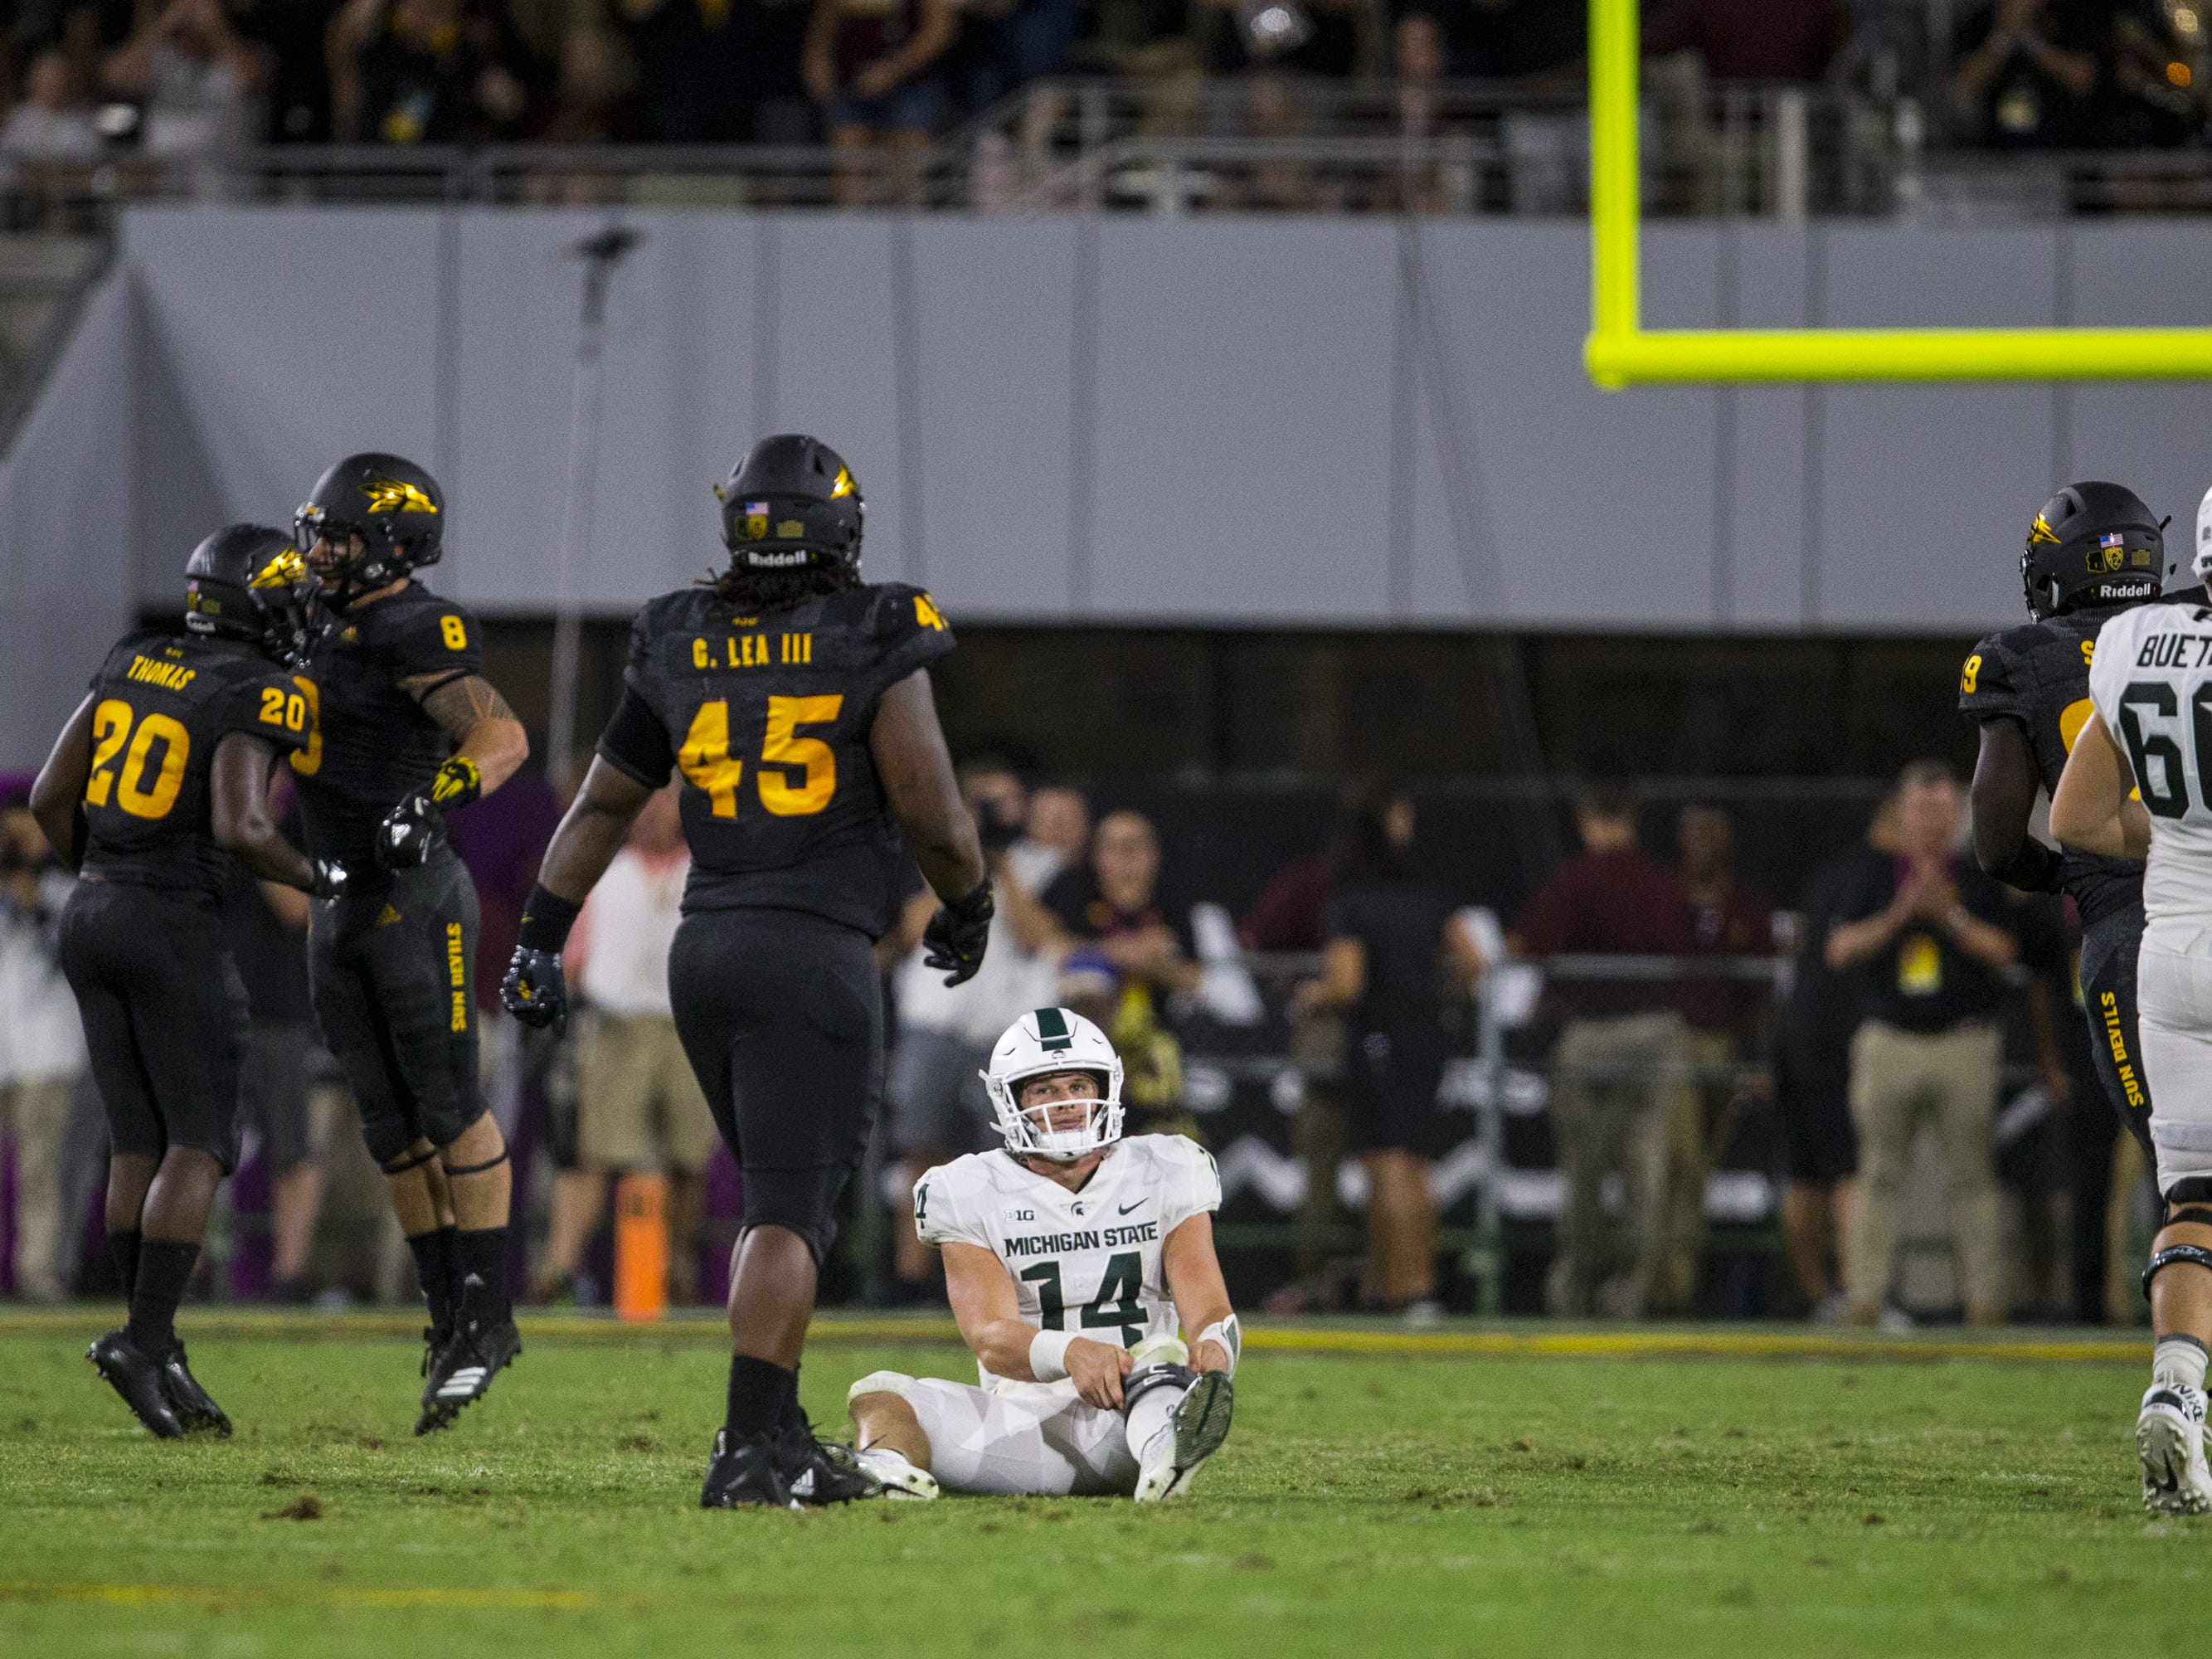 Michigan State's Brian Lewerke lies on the ground after being sacked against Arizona State in the 4th quarter on Saturday, Sept. 8, 2018, at Sun Devil Stadium in Tempe, Ariz. Arizona State won, 16-13.